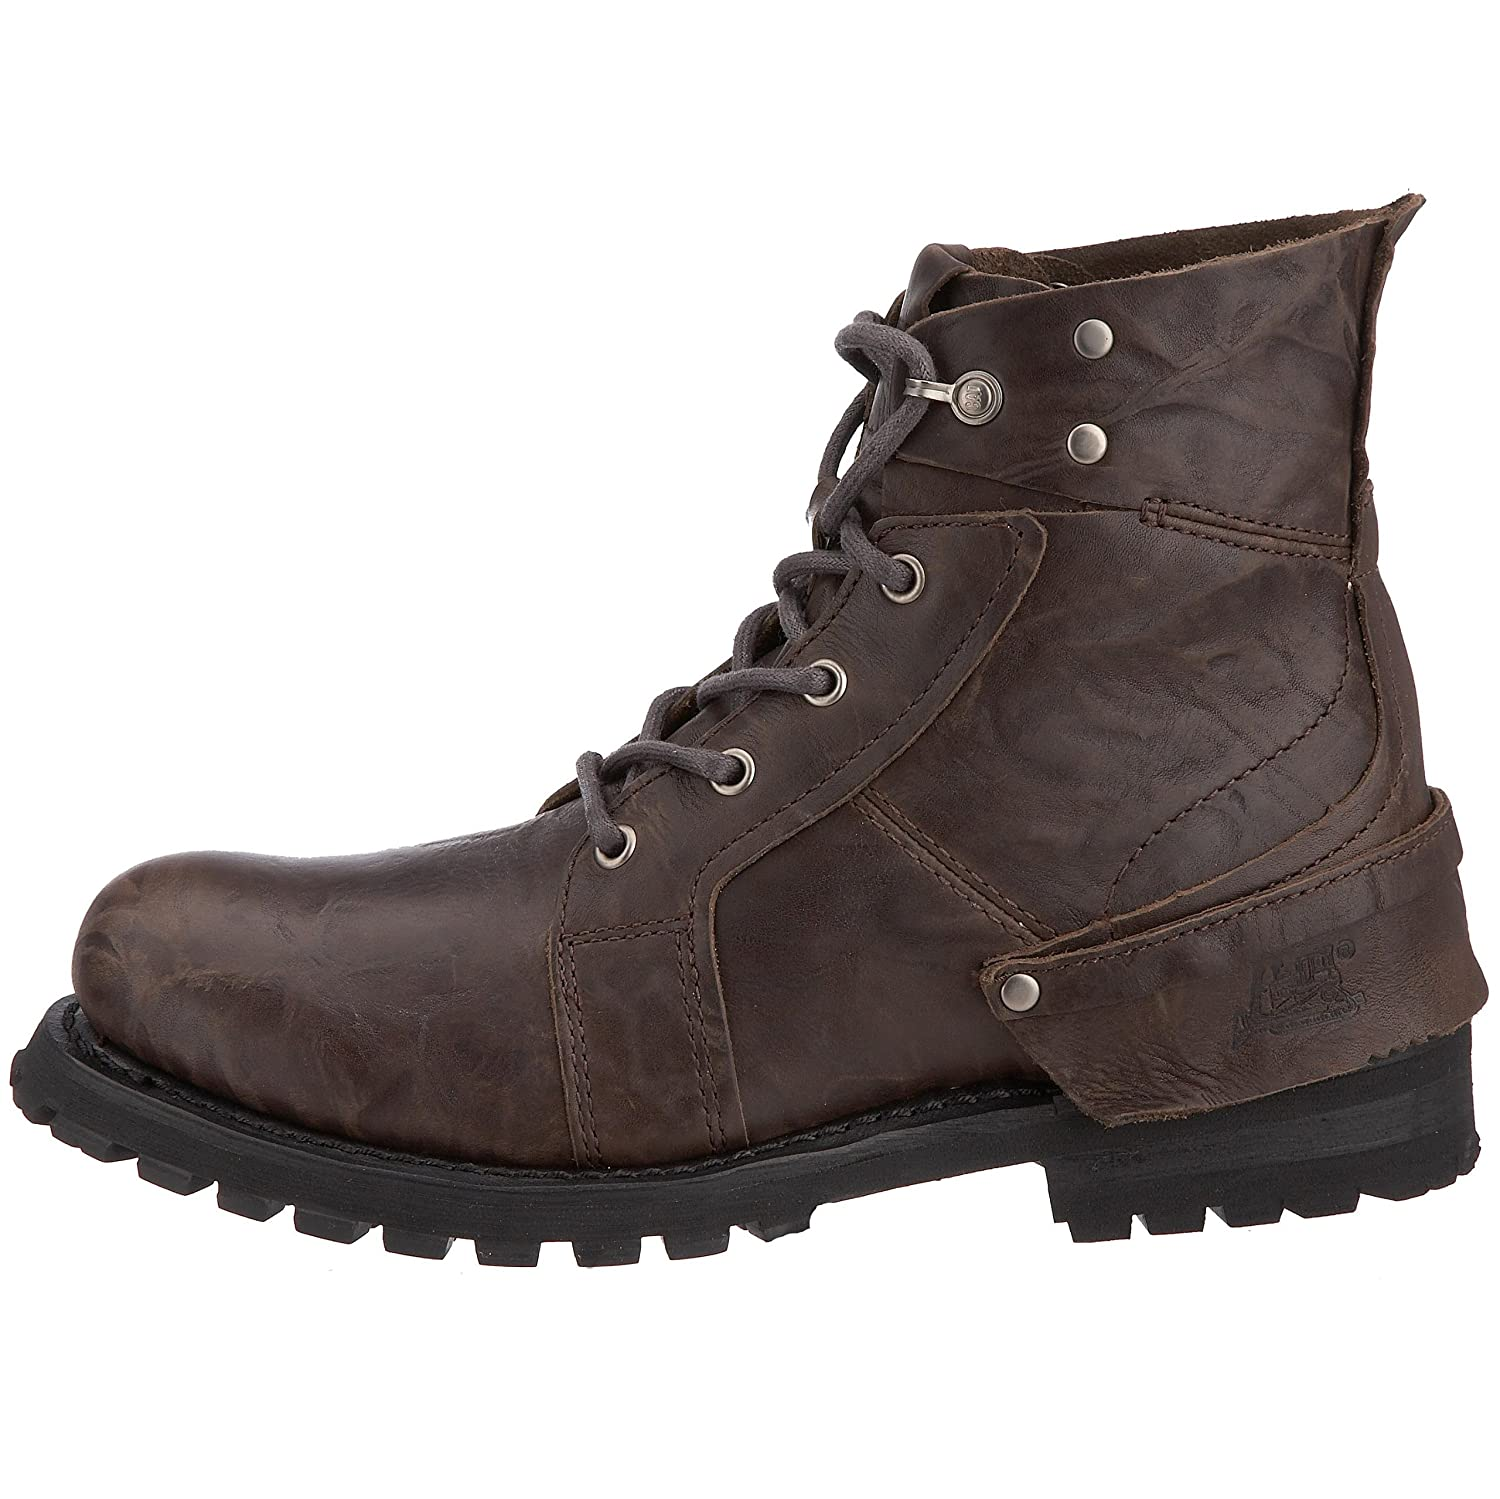 e07f156a436a51 CAT Footwear Men's Peril Boot Broth P710499 8 UK: Amazon.co.uk: Shoes & Bags